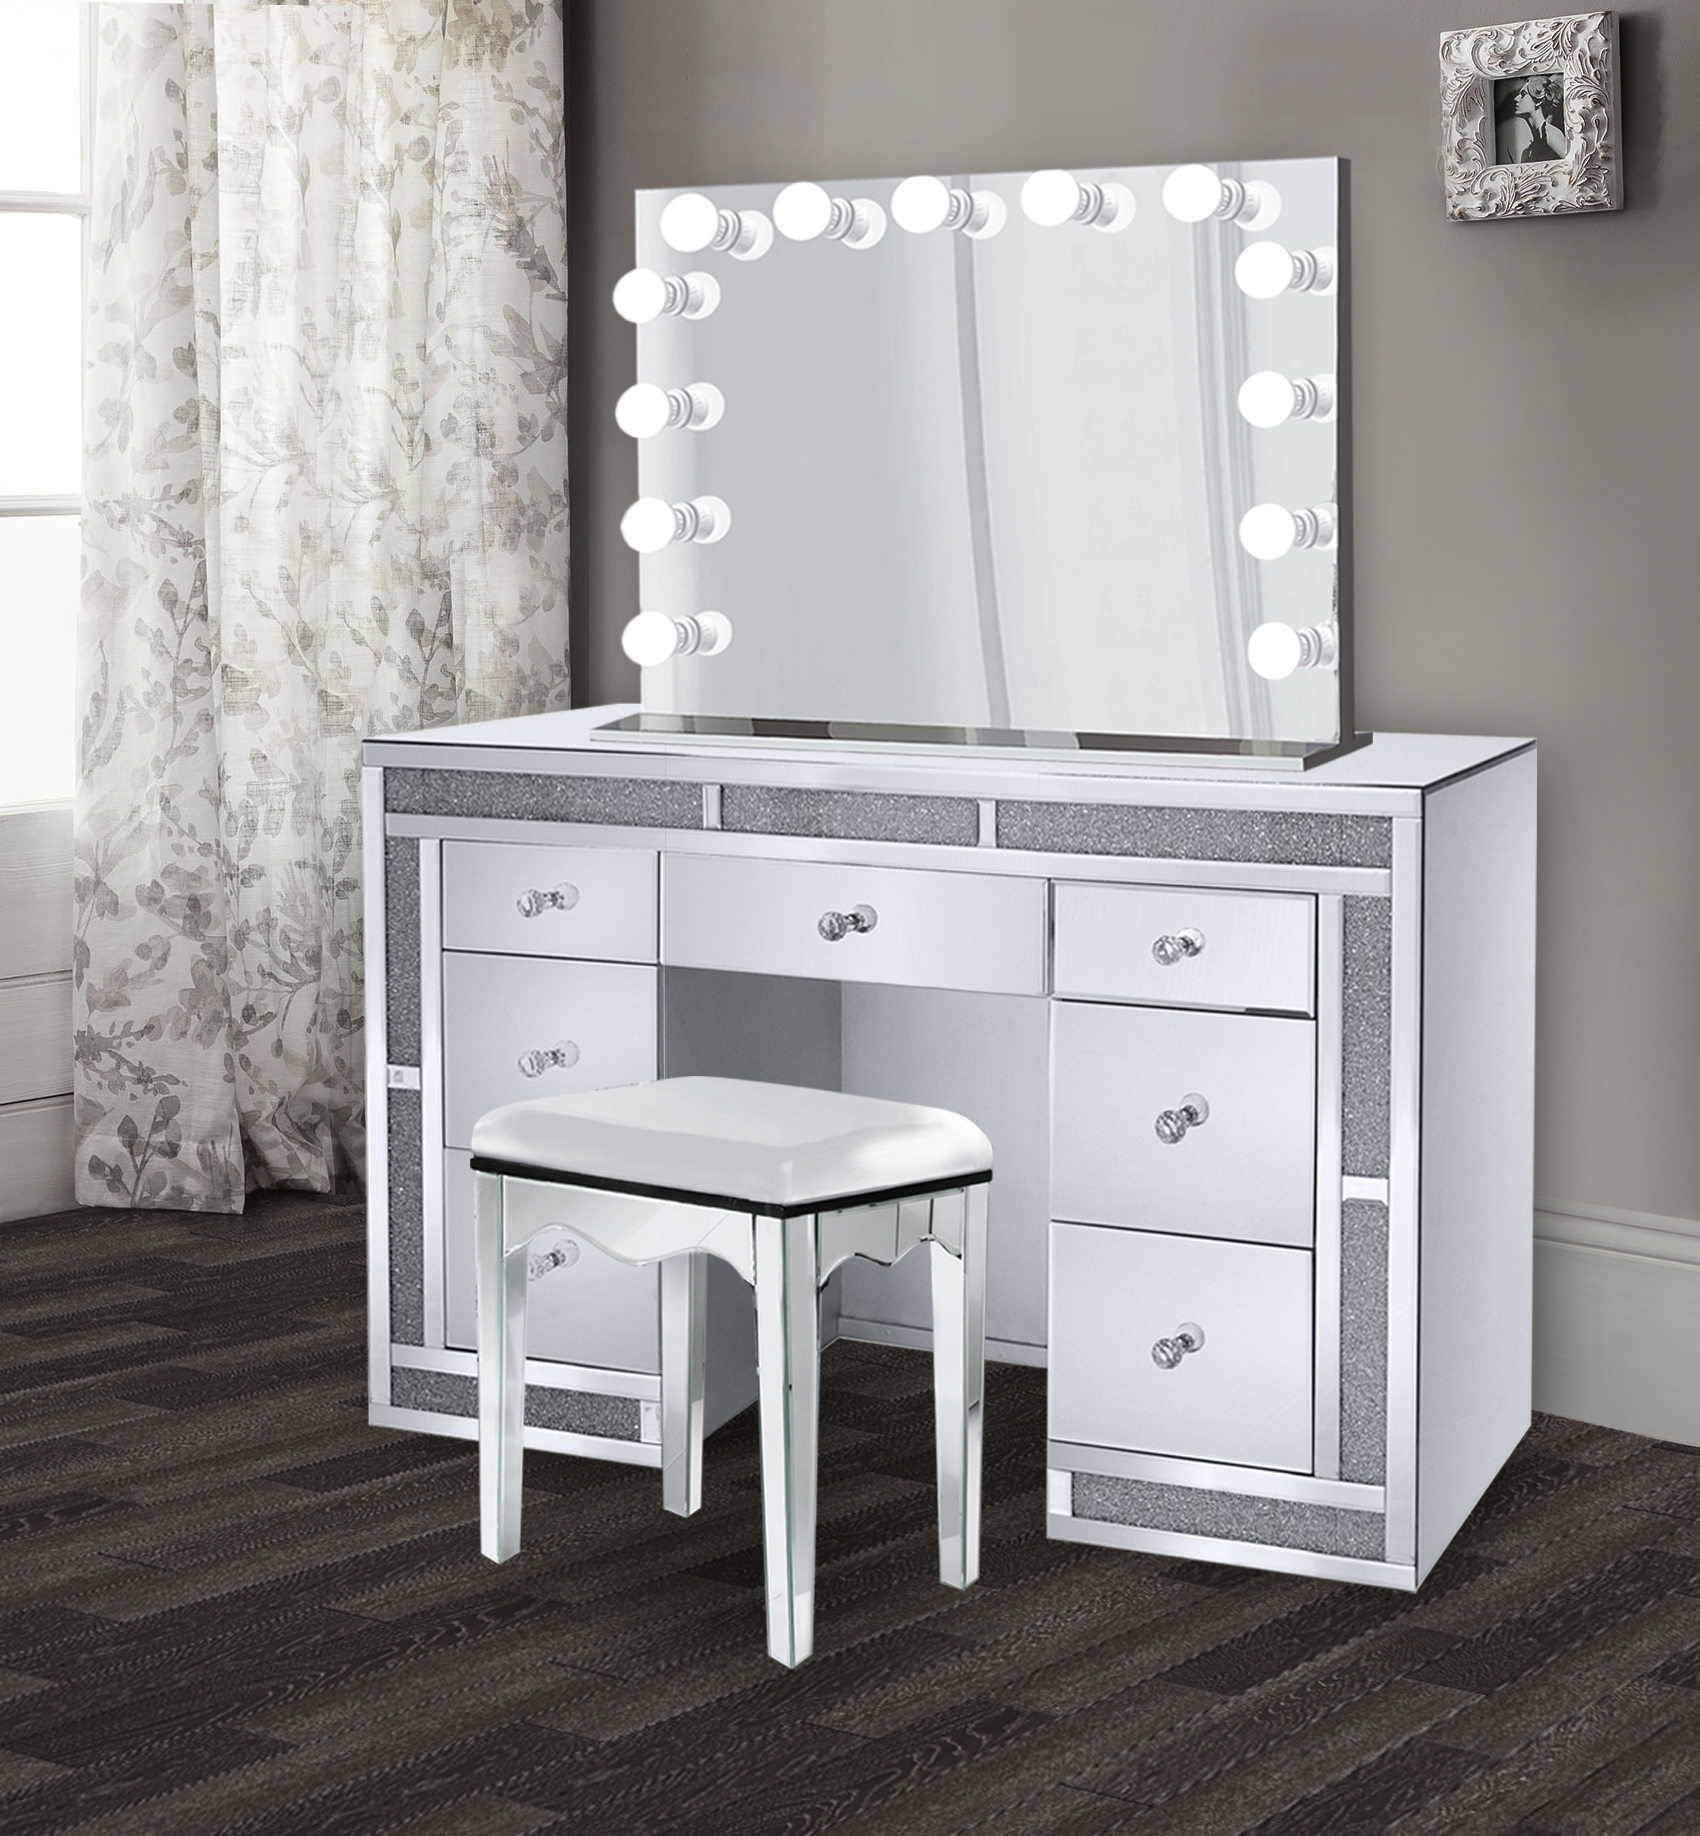 glam 1 2crt crystal makeup vanity set includes glam hollywood mirror makeup table with multi drawers